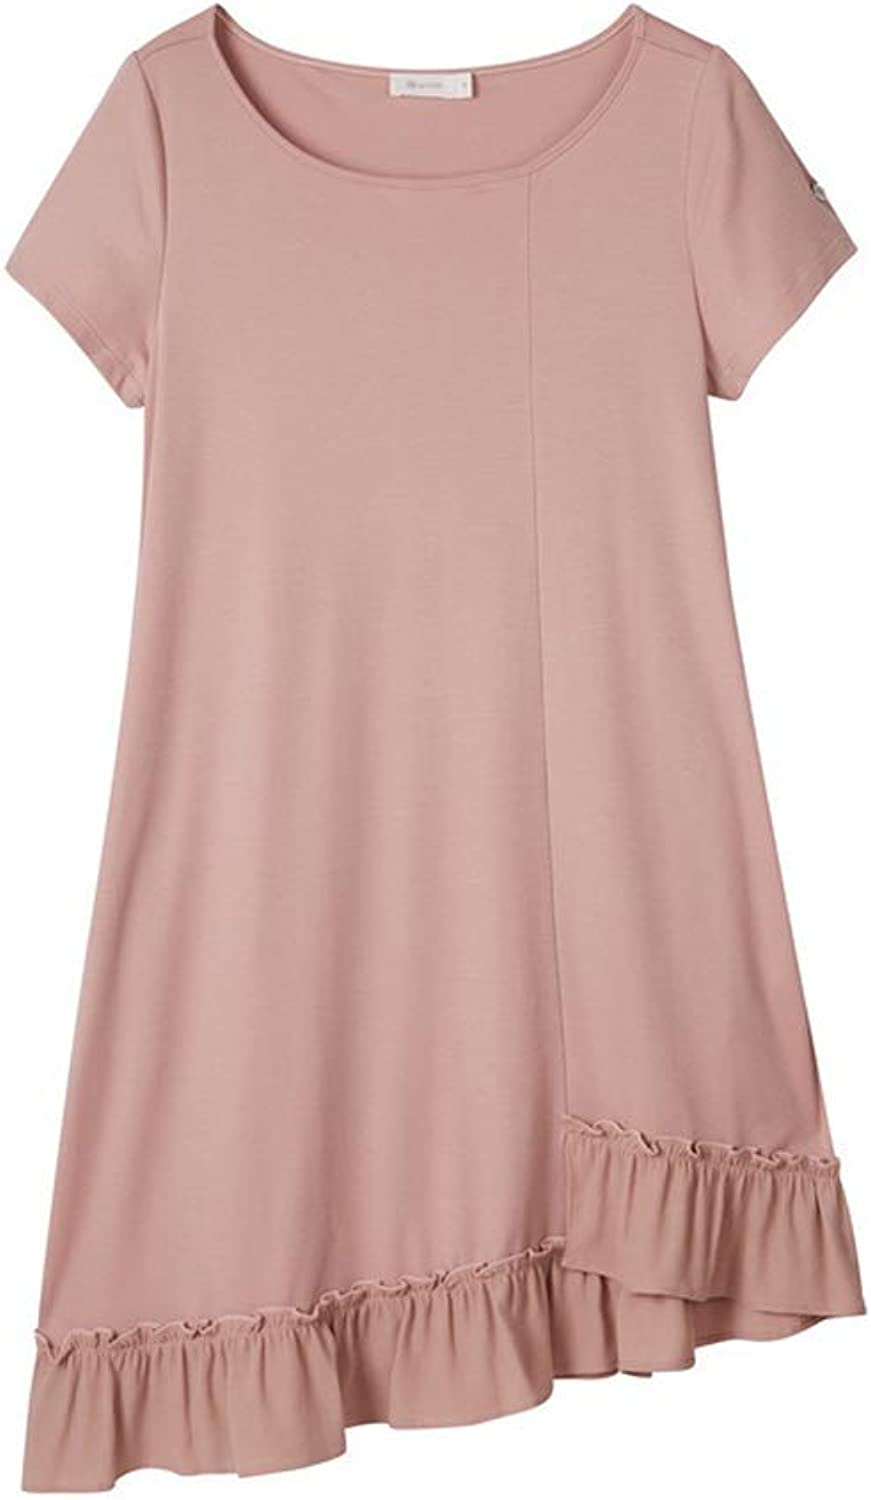 Home Service Women's Long TShirt Nightdress Women's Solid color Simple Home Service Cotton Nightdress (color   Pink, Size   S)